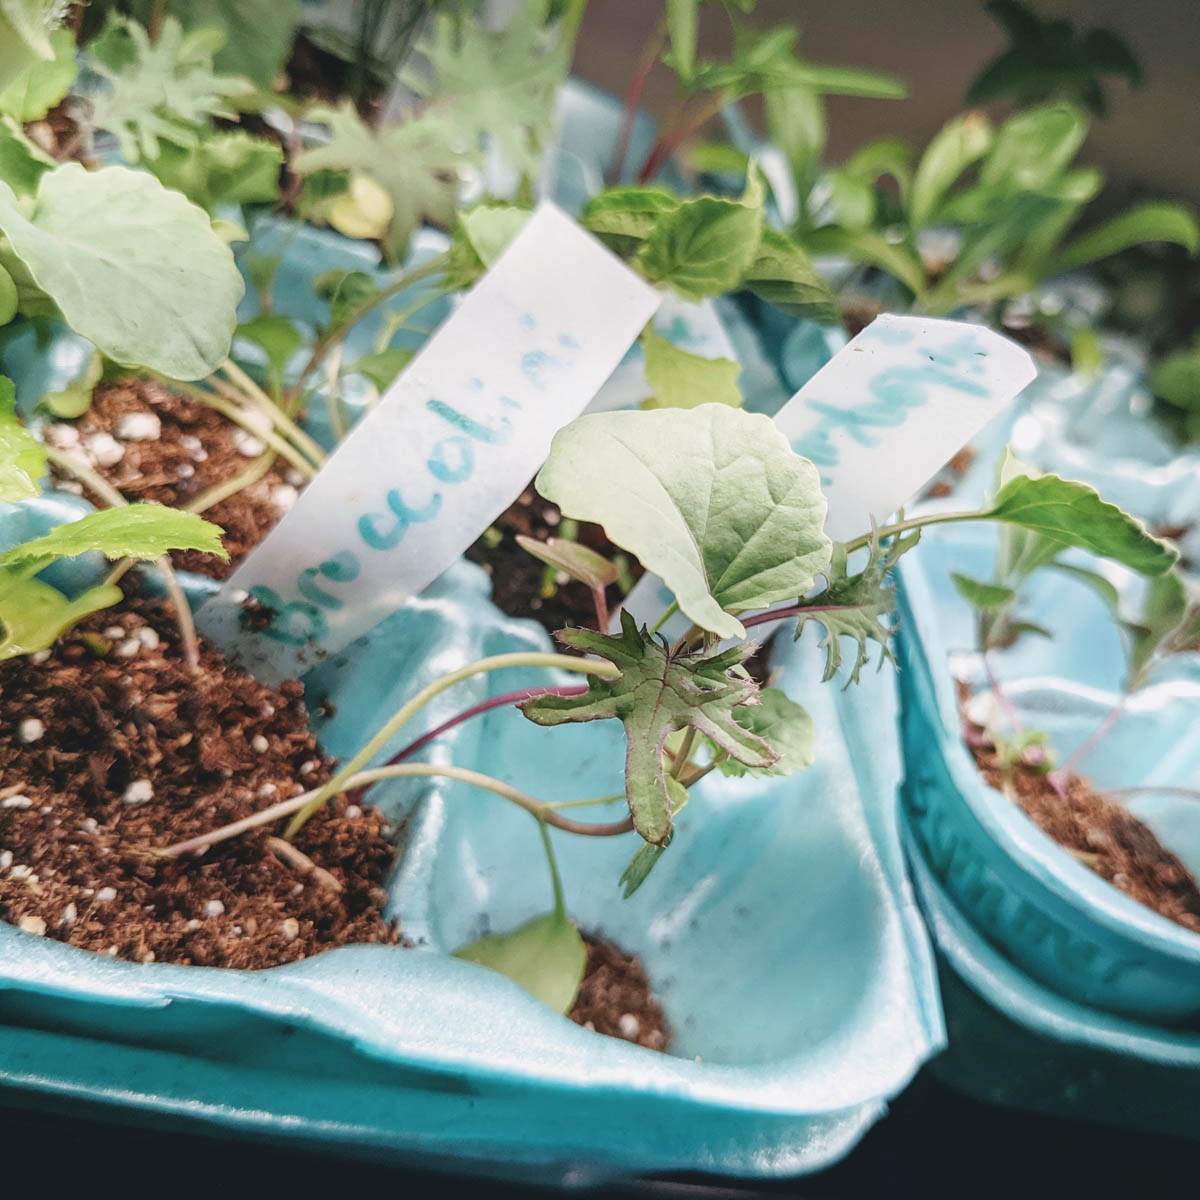 What is Broccolini - Here is a broccolini seedling of the popular broccoli hybrid in an egg carton with potting soil.